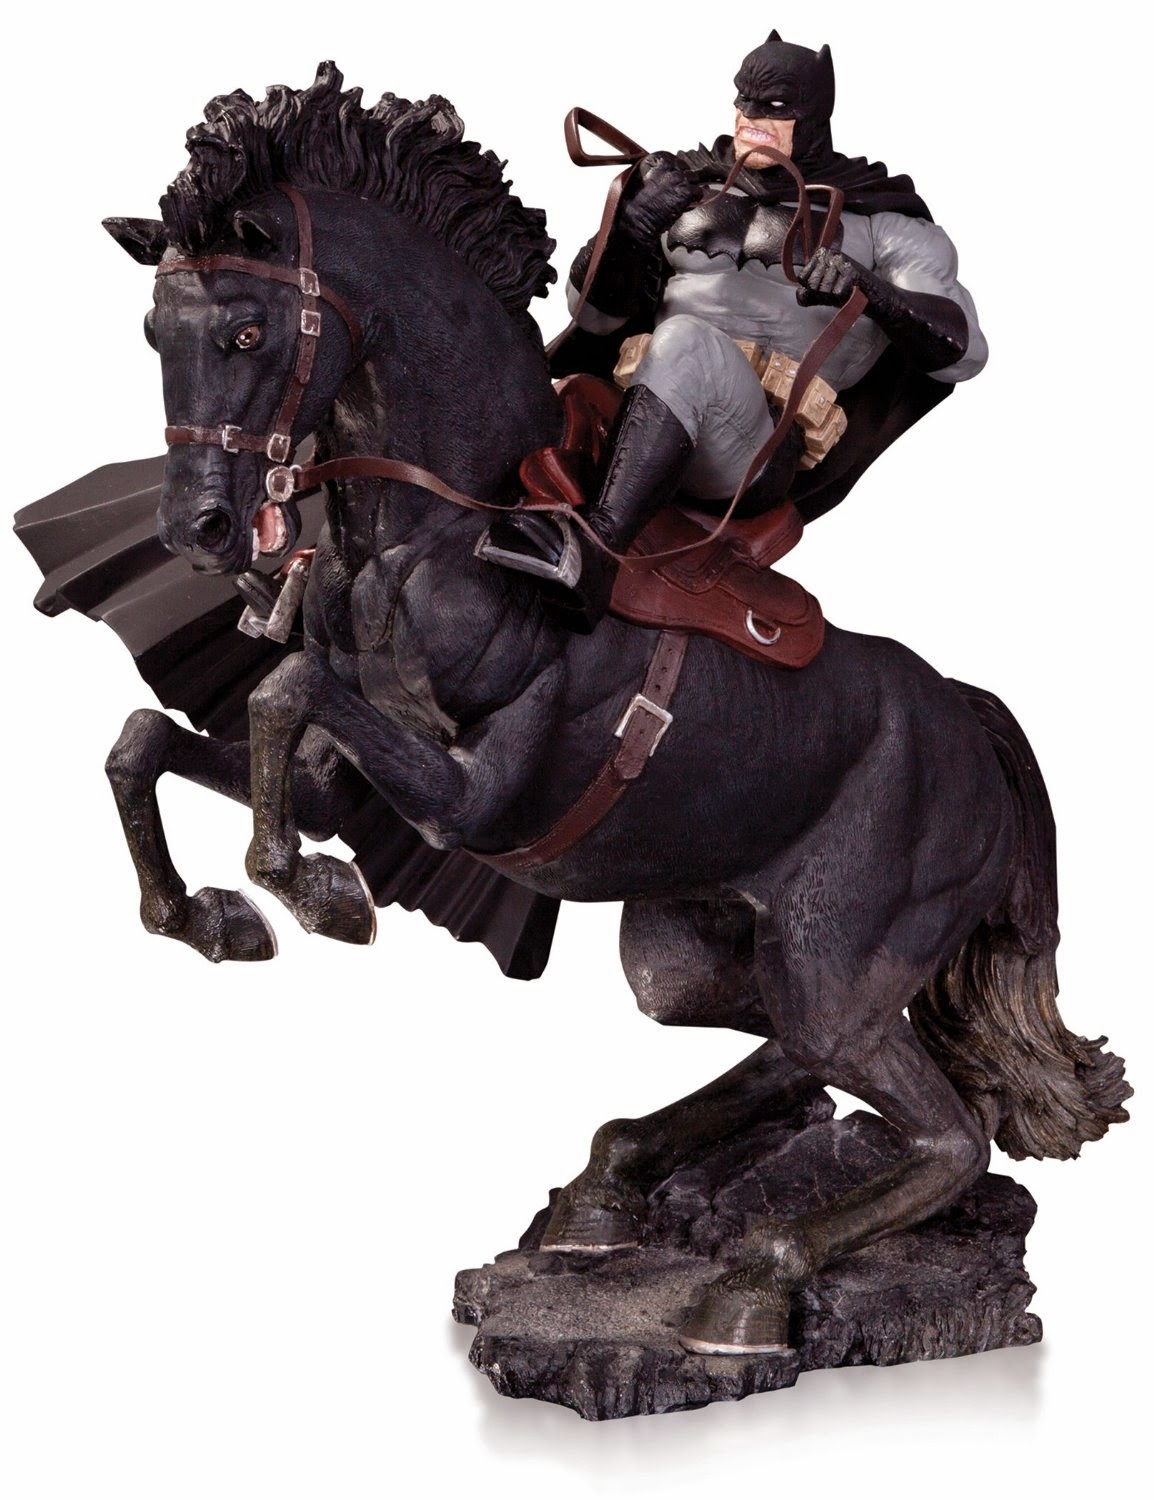 Buy Now Discount Price The Dark Knight Returns: A Call to Arms Statue by DC Collectibles